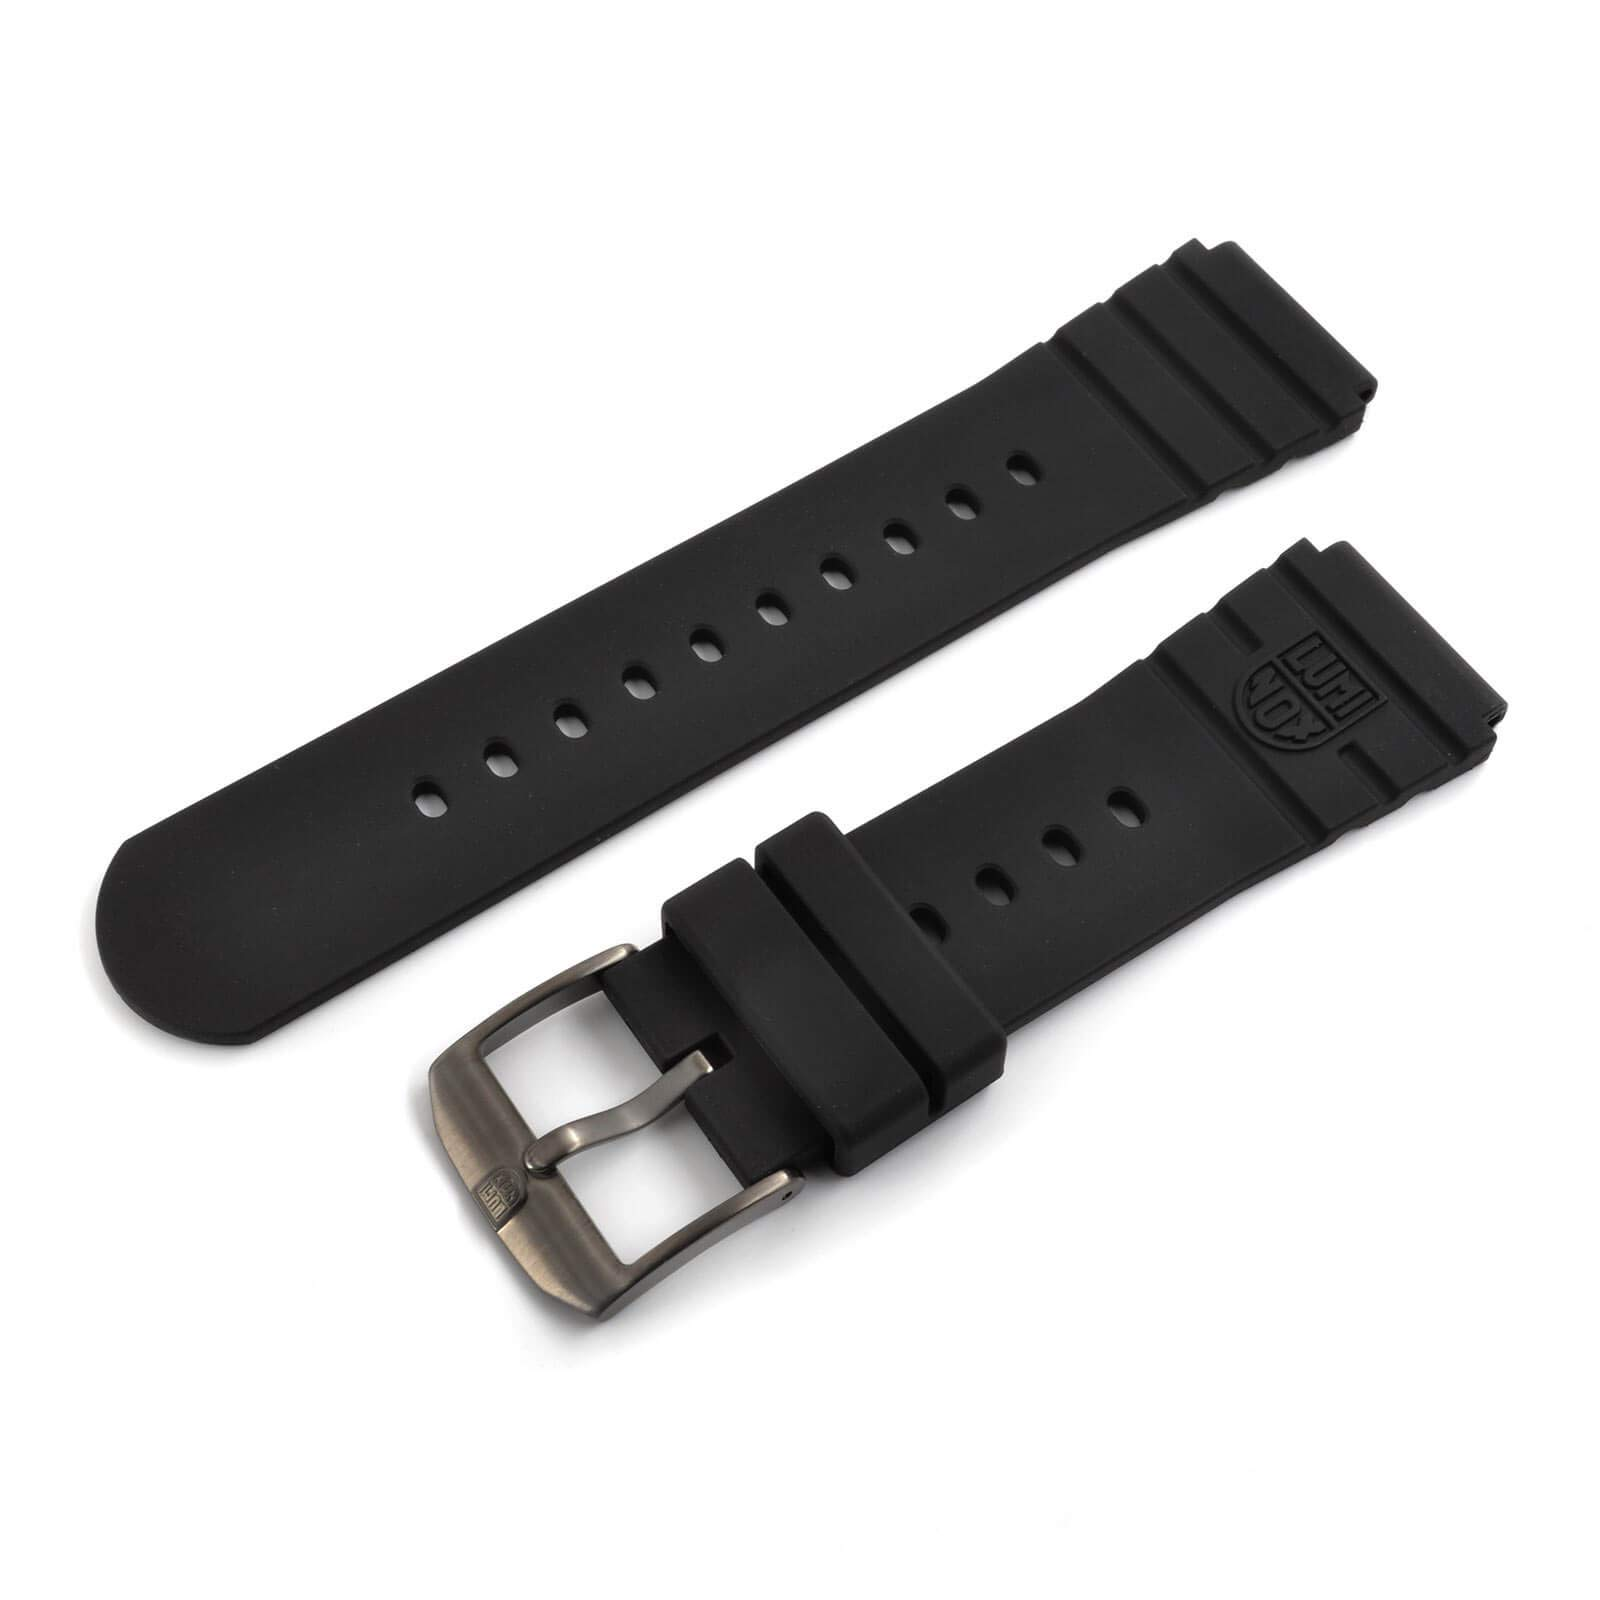 DPB 22 mm Black Polymere Replacement Band for 3000, 3900, 3100, 3200, 3400, and 3600 series